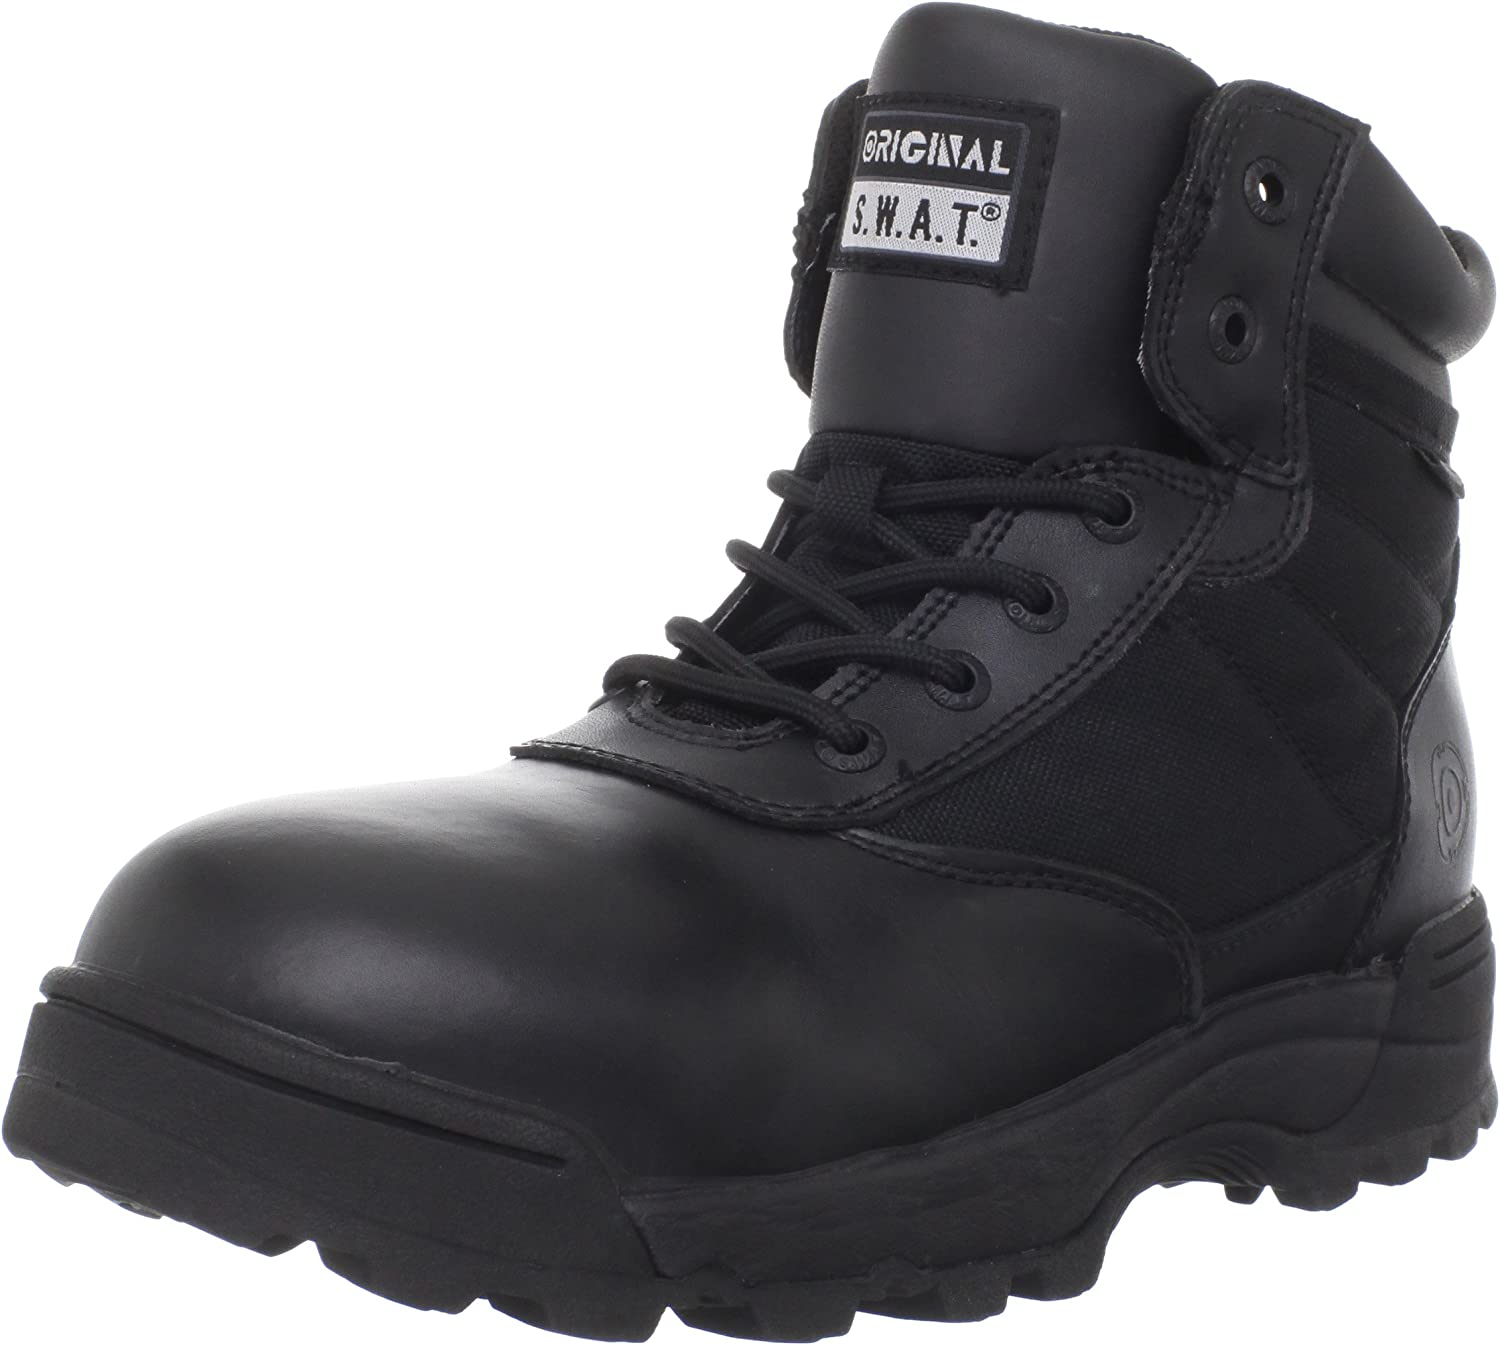 Original S.W.A.T. Men's Classic 6 Side-zip Safet Portland Mall Some reservation Waterproof Inch